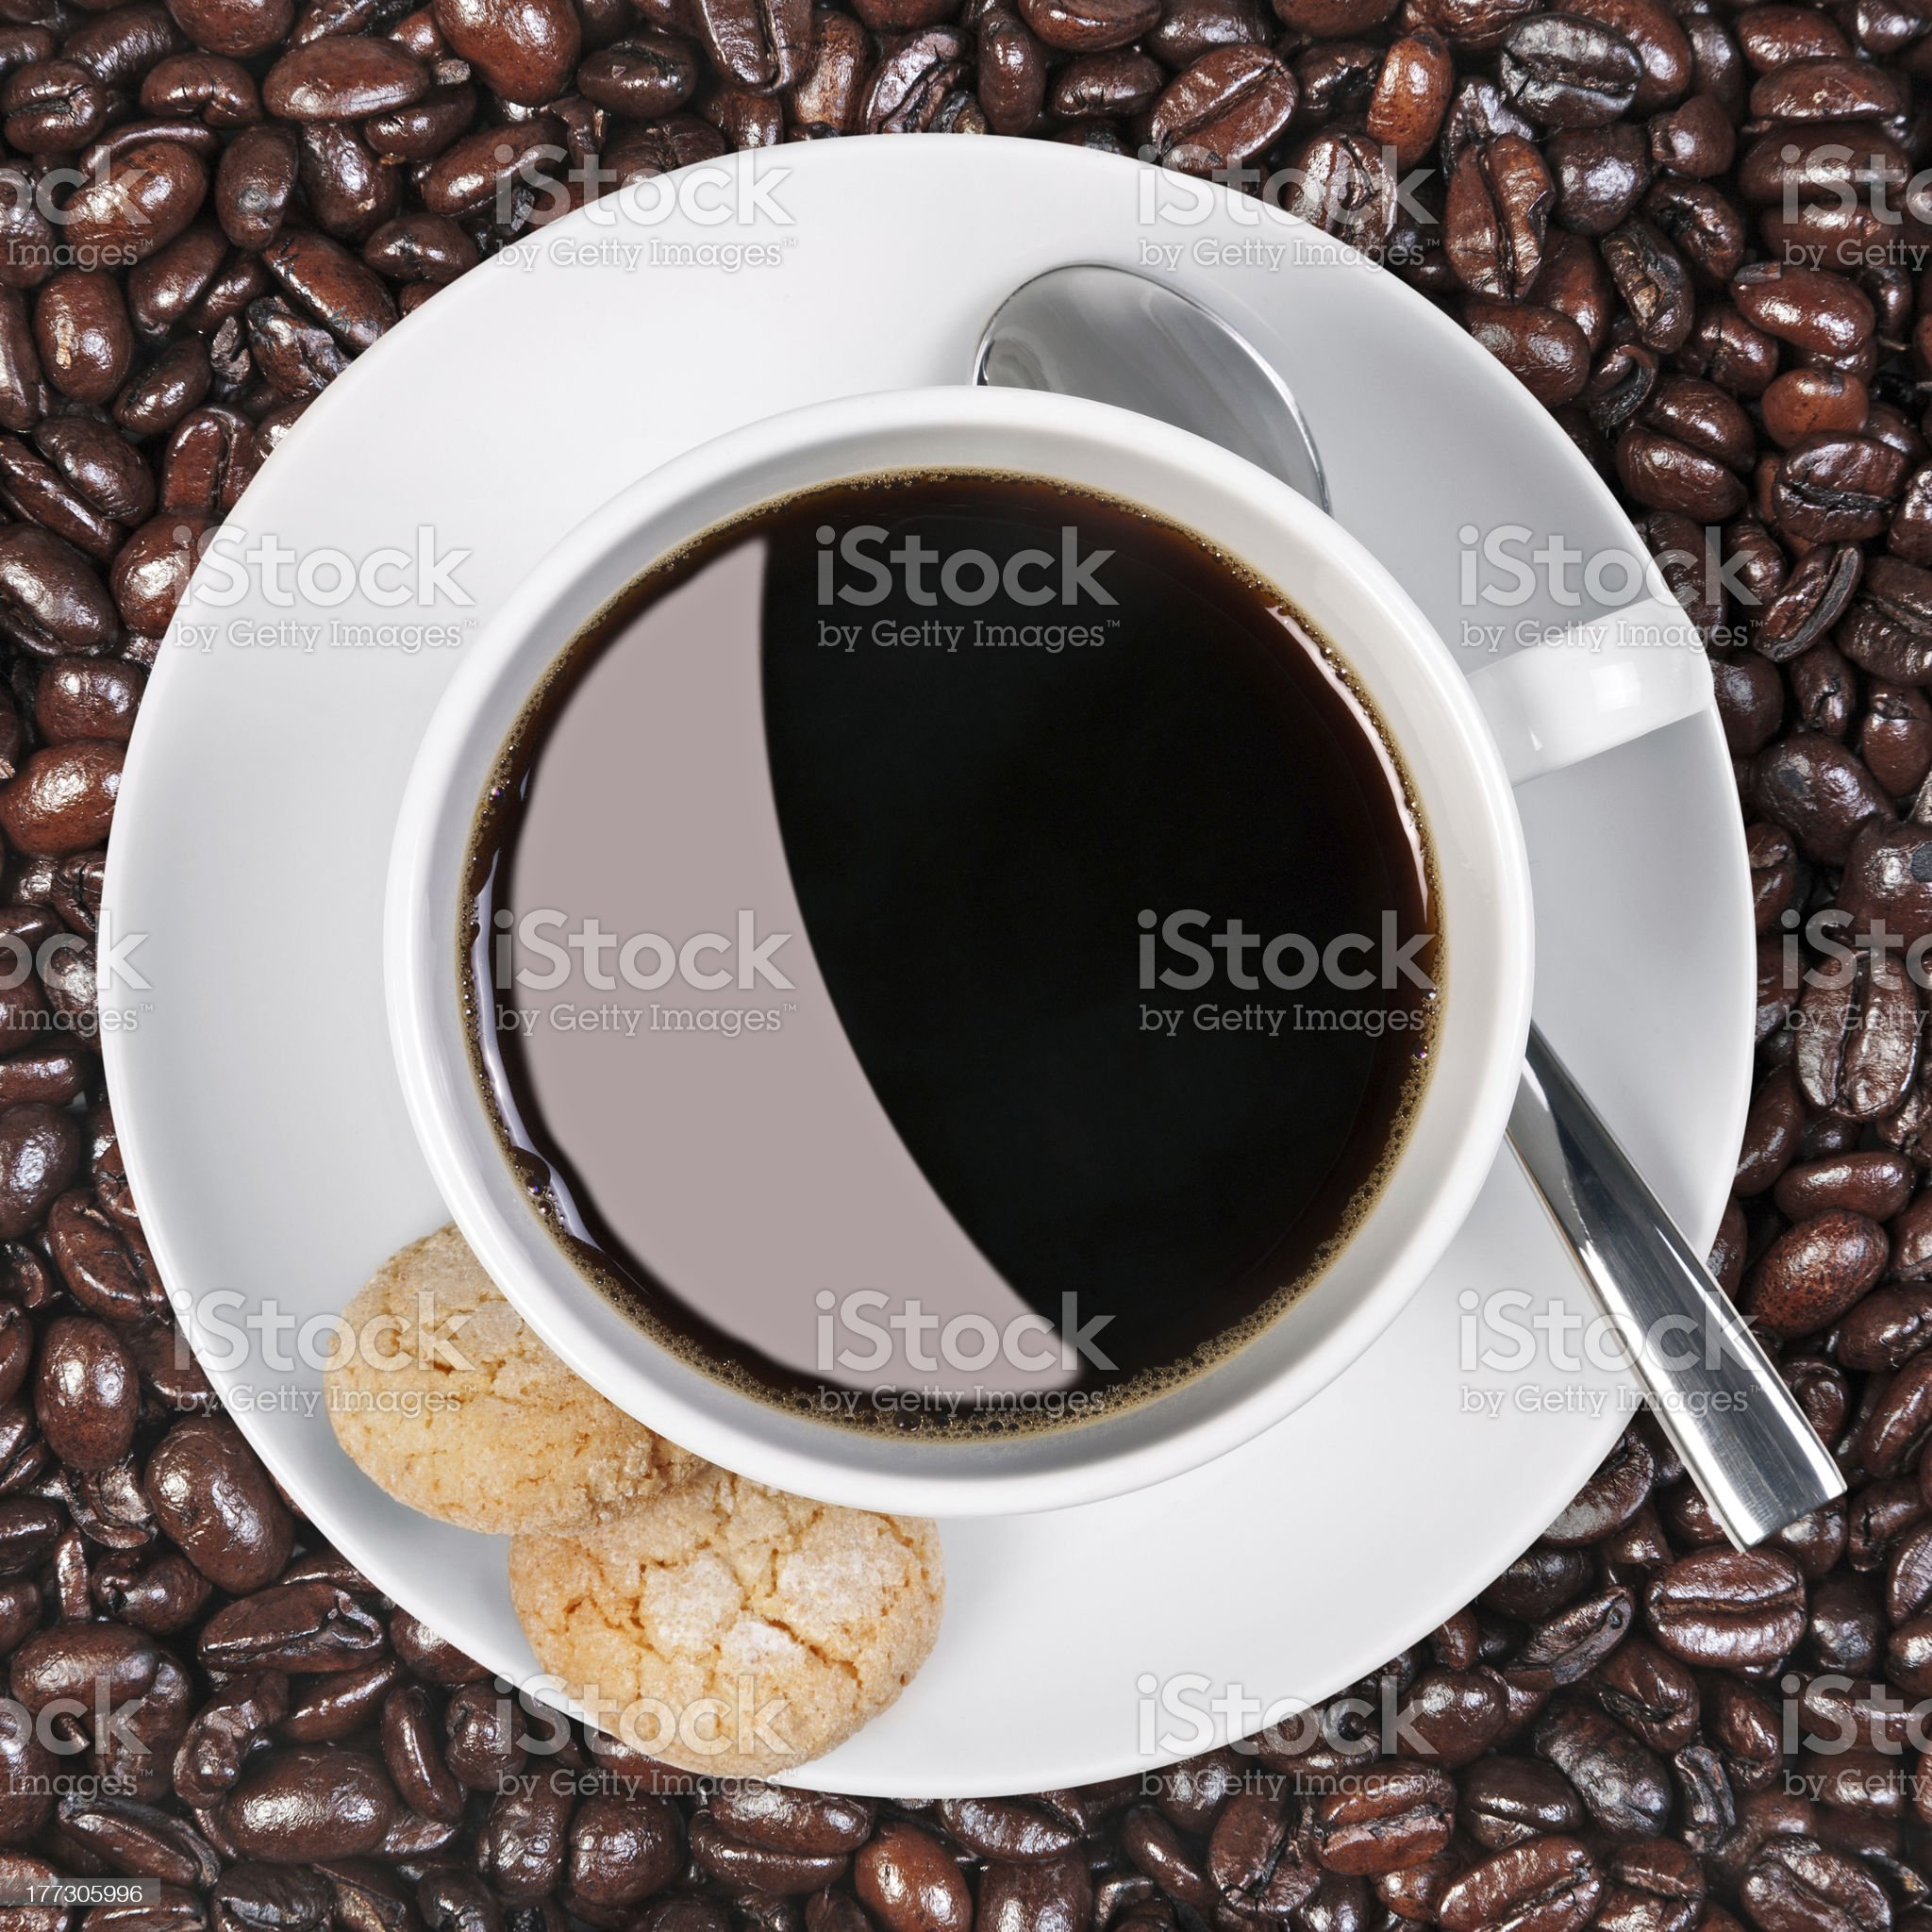 Coffee cup biscuits and beans. royalty-free stock photo